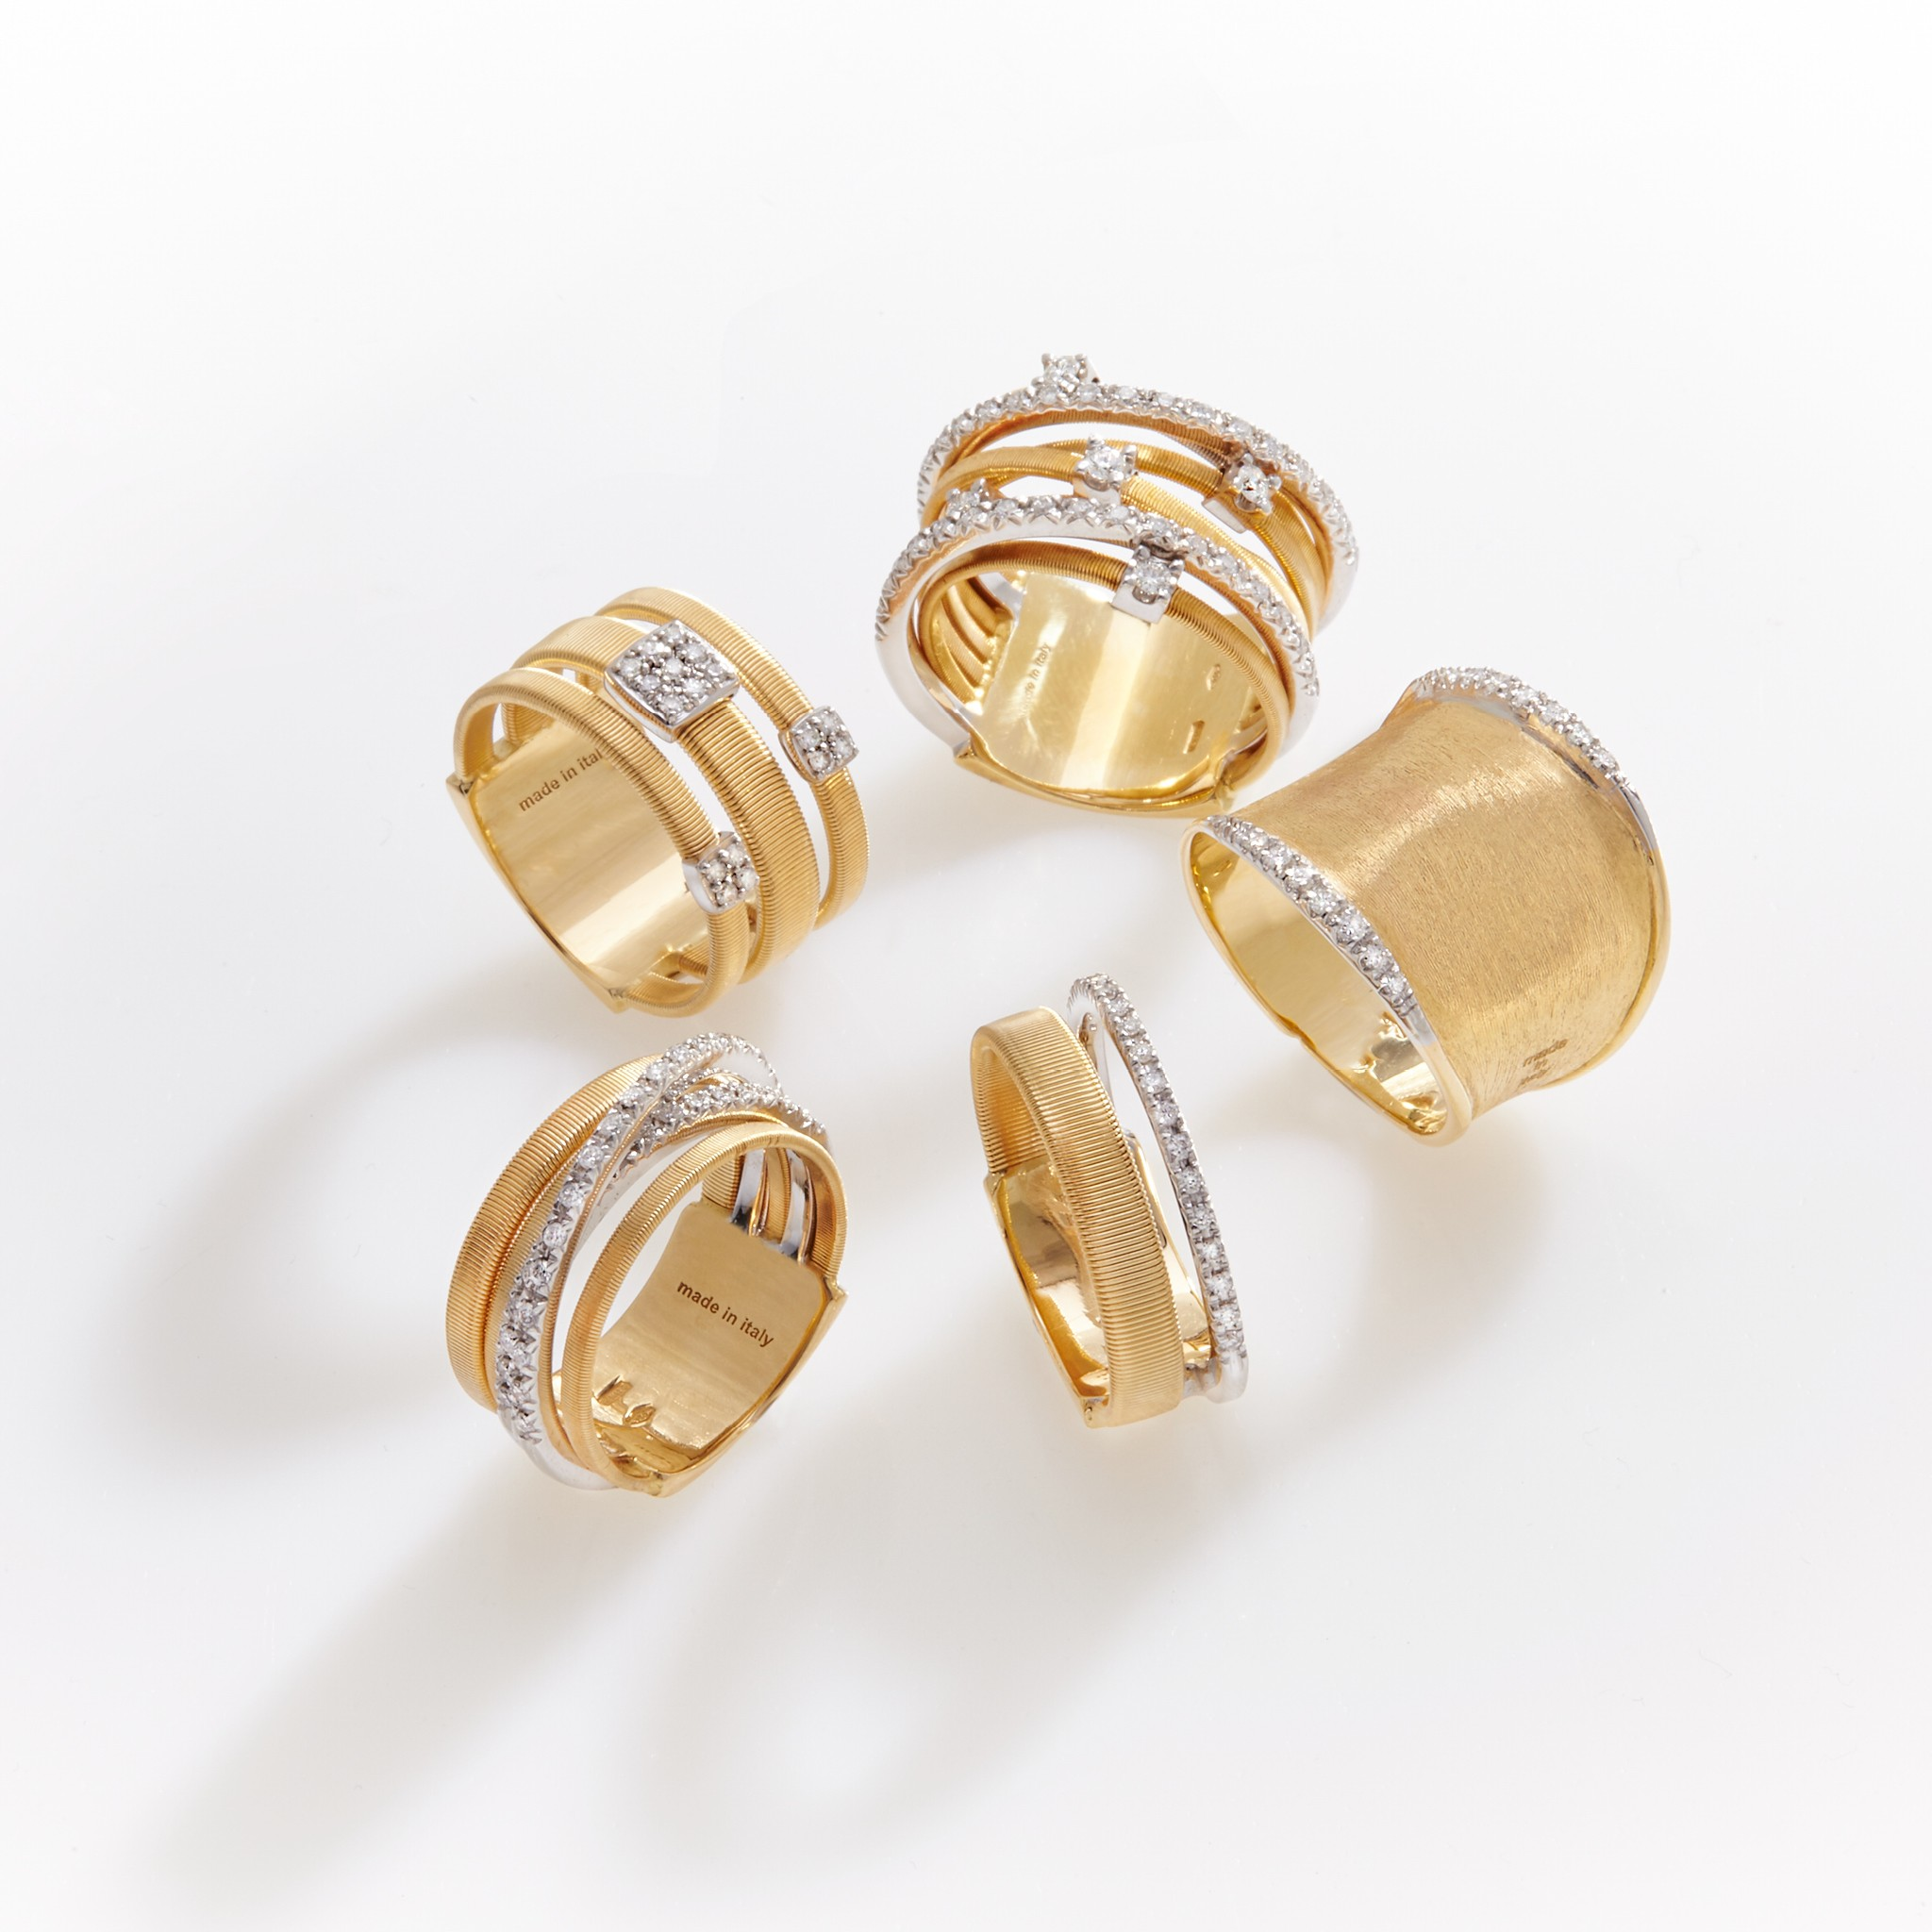 Marco Bicego gold rings on El Paseo in Palm Desert, California